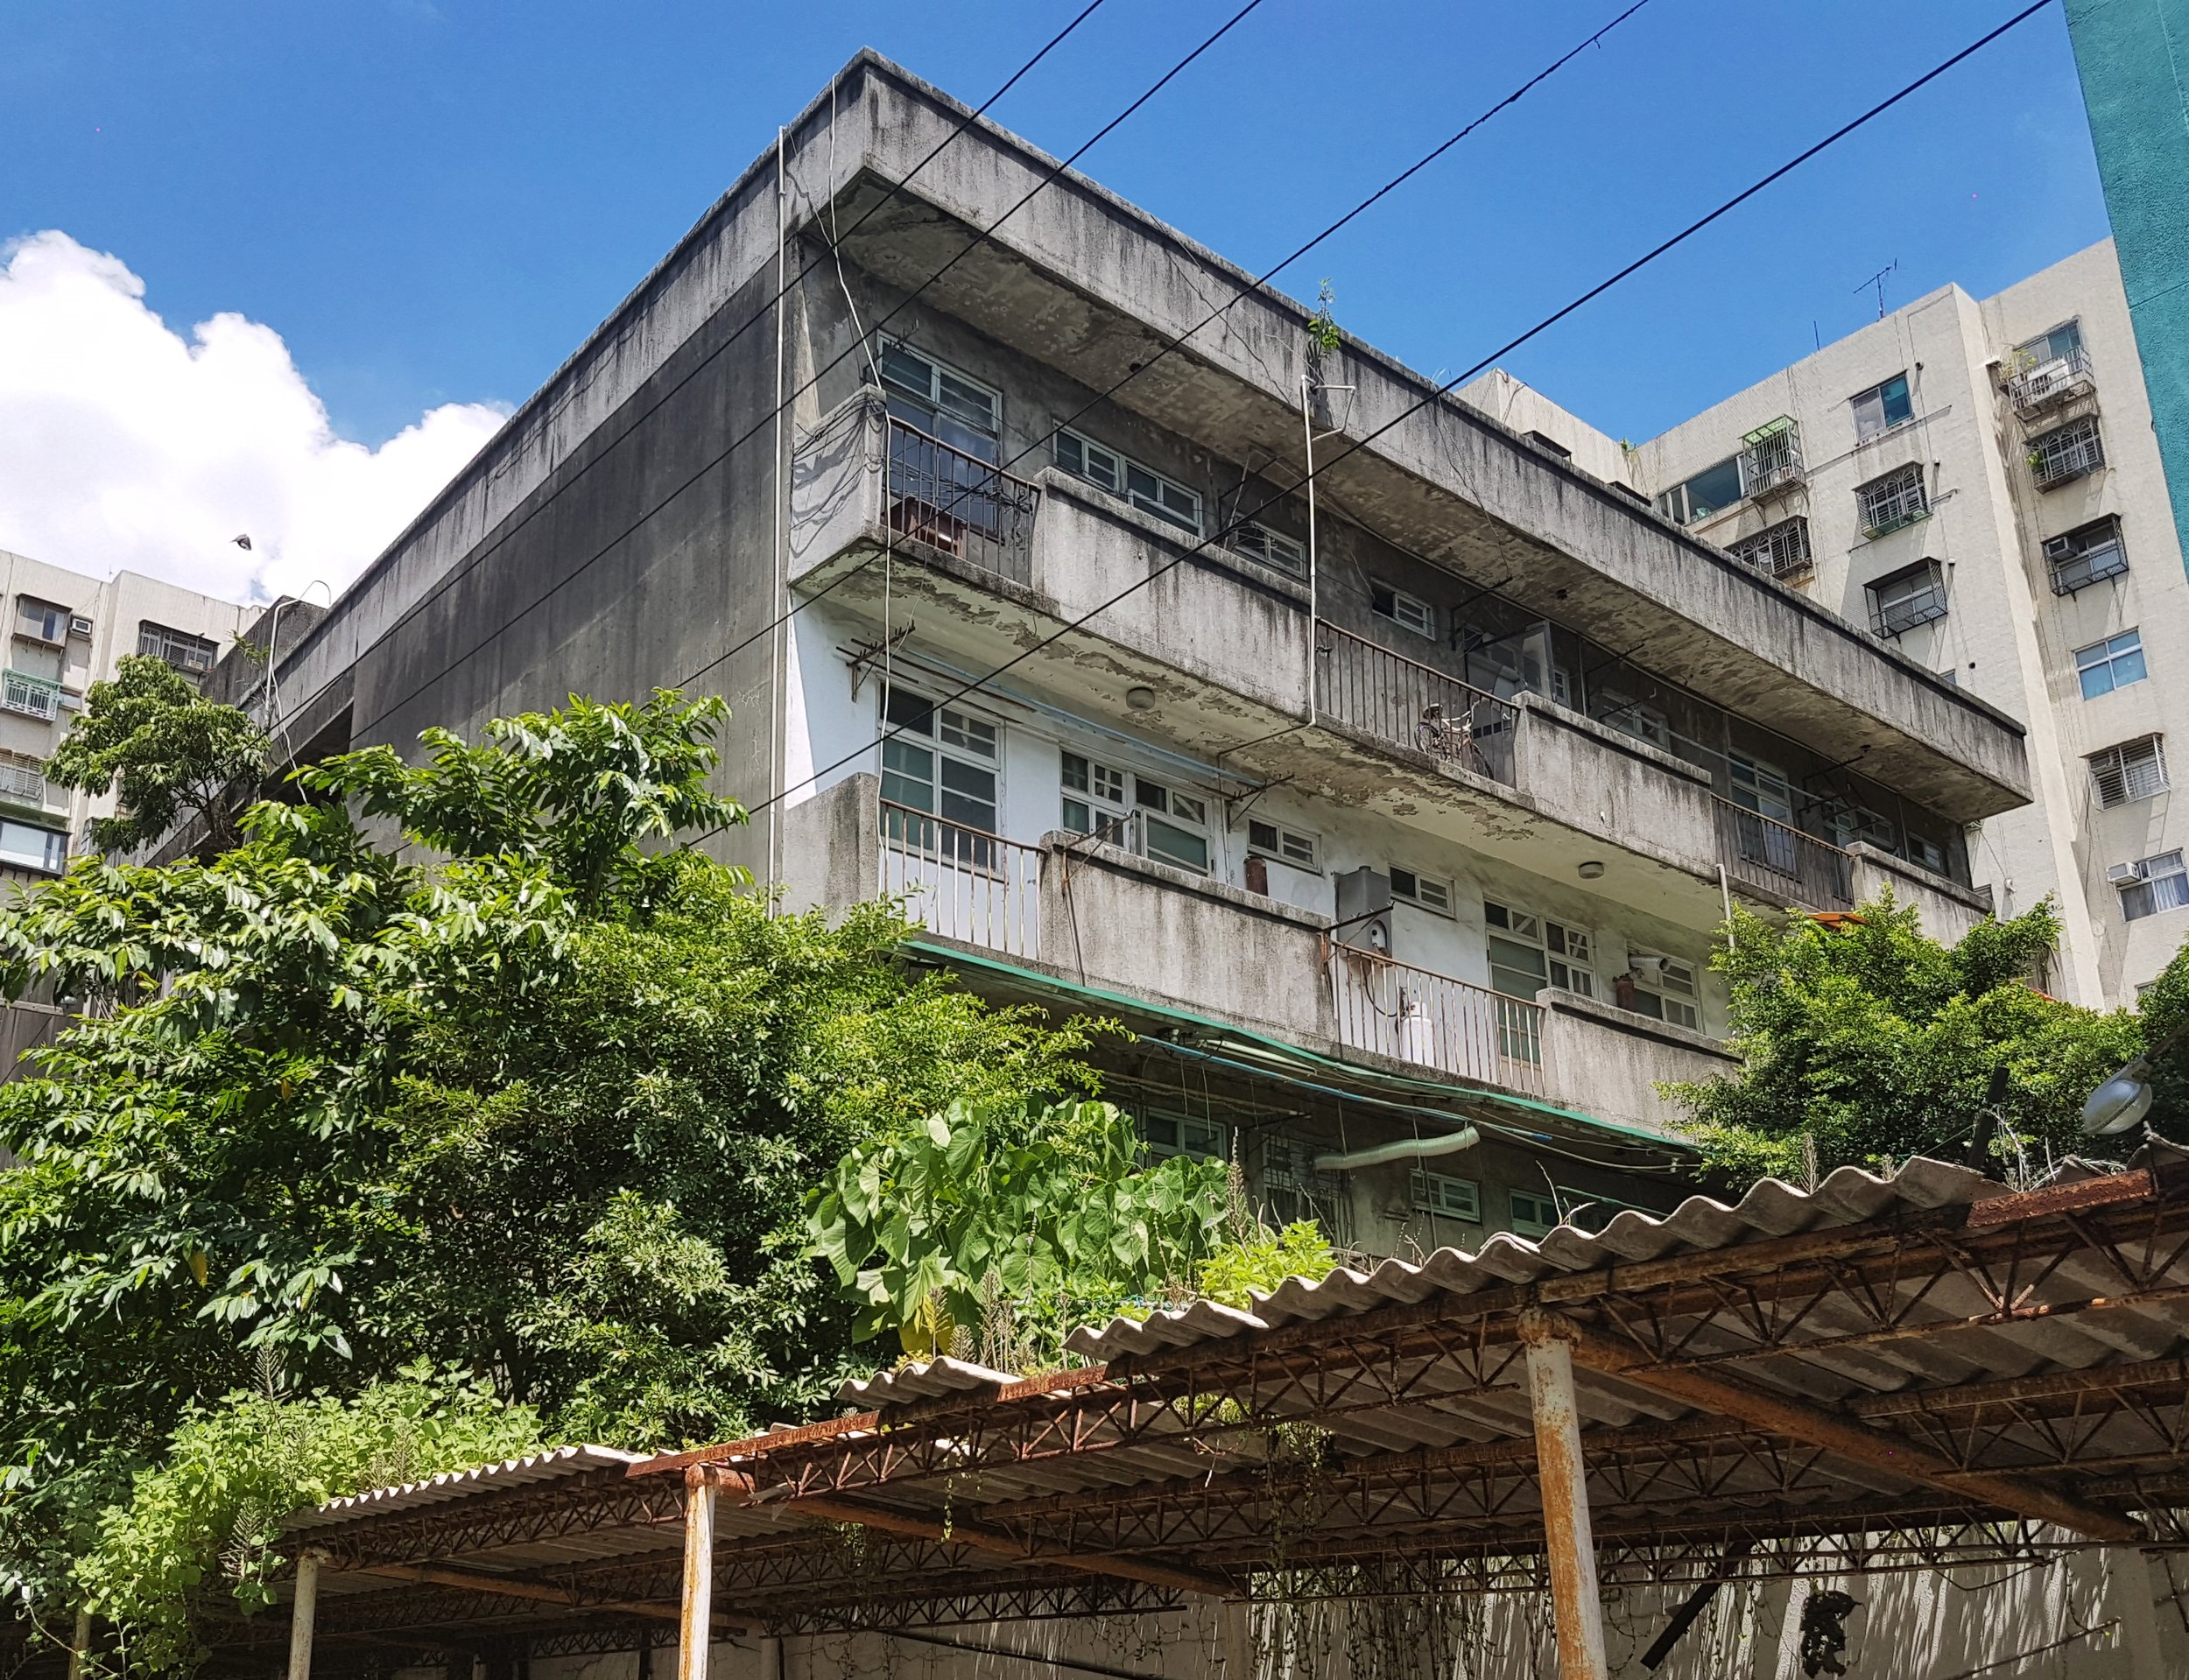 An old housing block adjacent to the site that looks abandoned but it's actually inhabited.